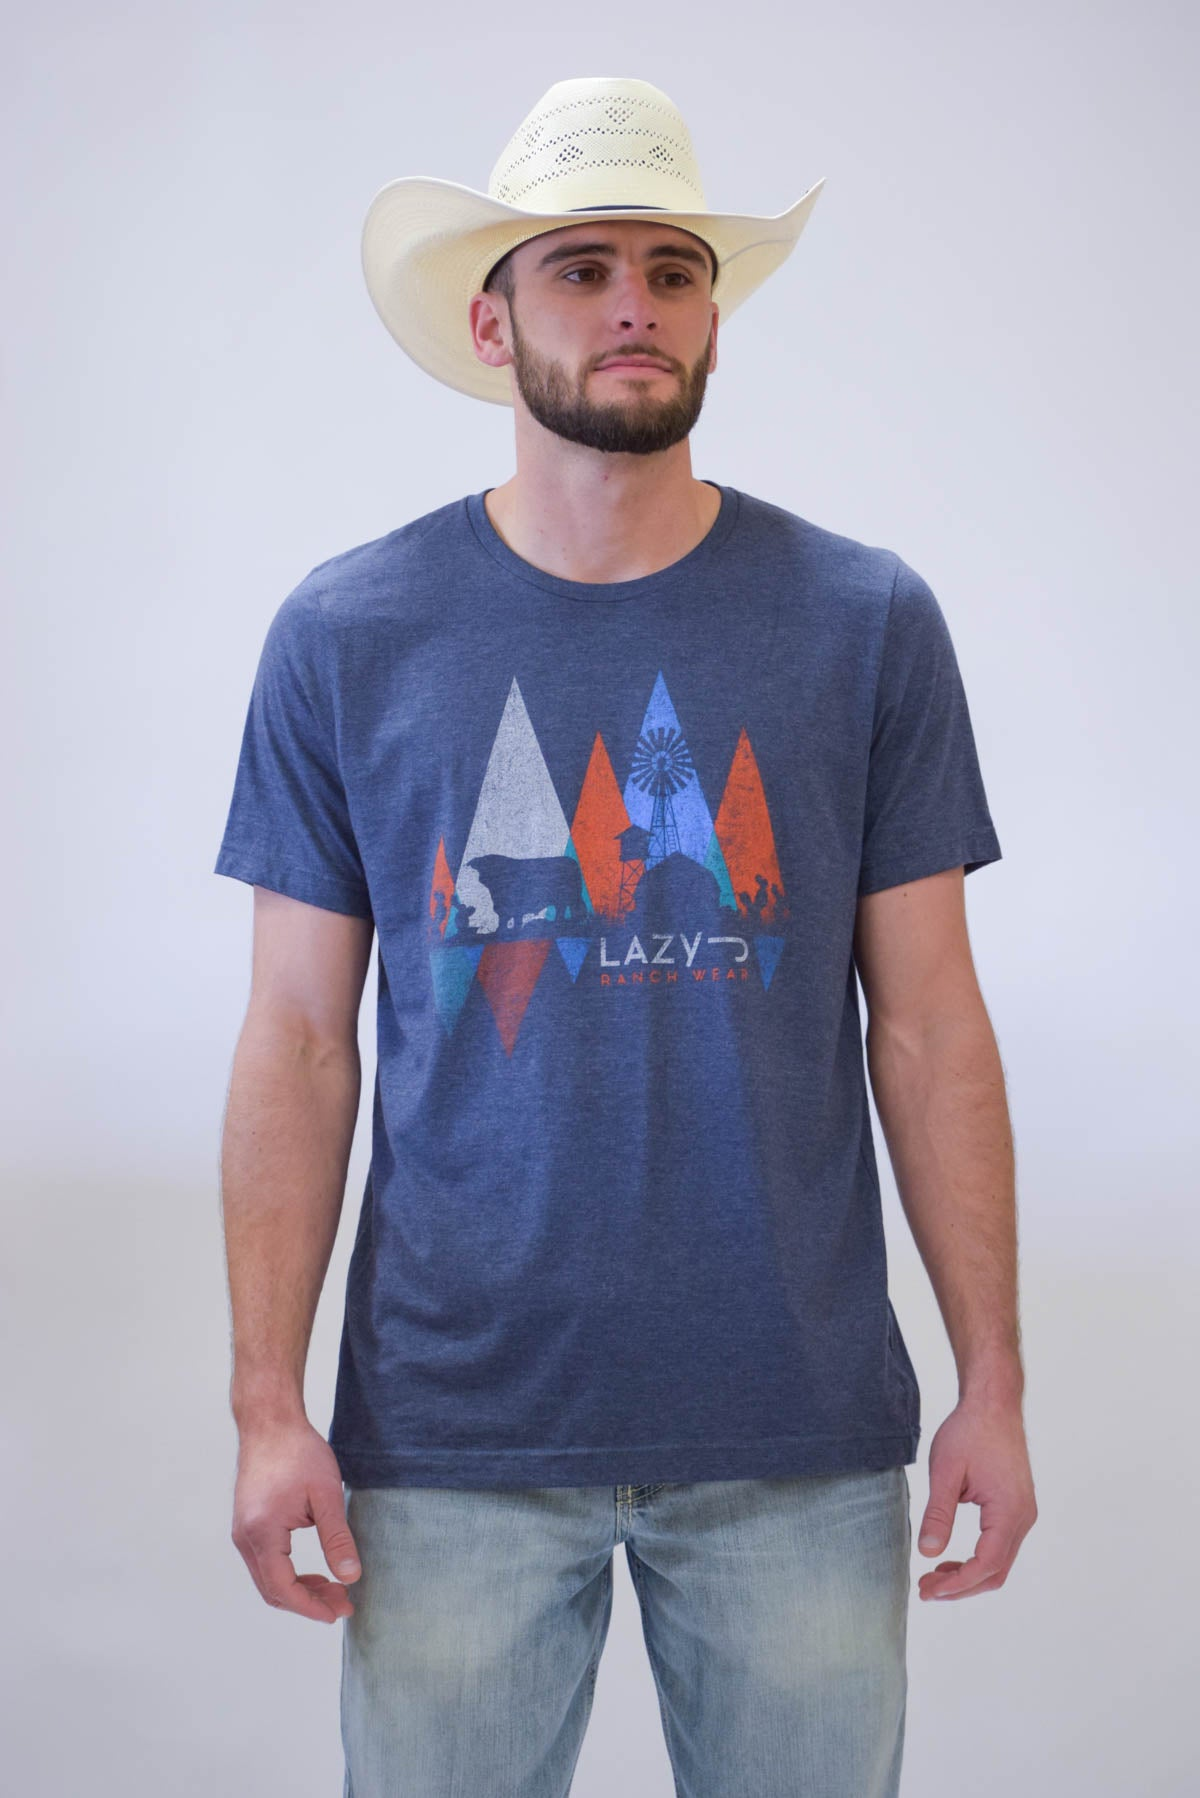 Lazy J Windmill Triangle Navy Short Sleeve T-Shirt